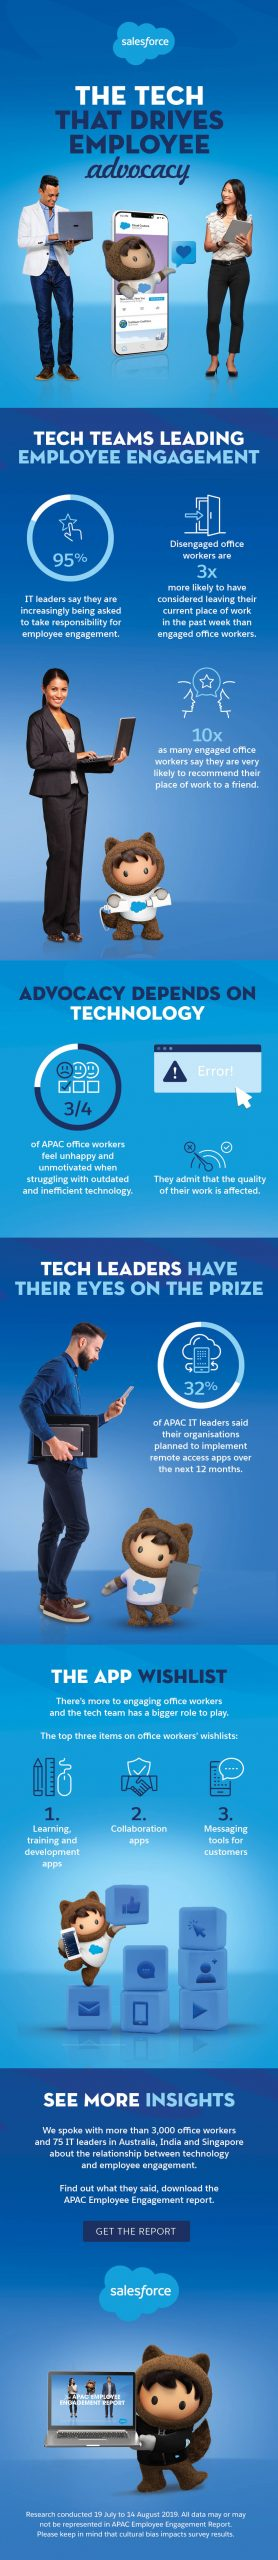 How IT Leaders Can Build Employee Advocacy | Salesforce Infographic